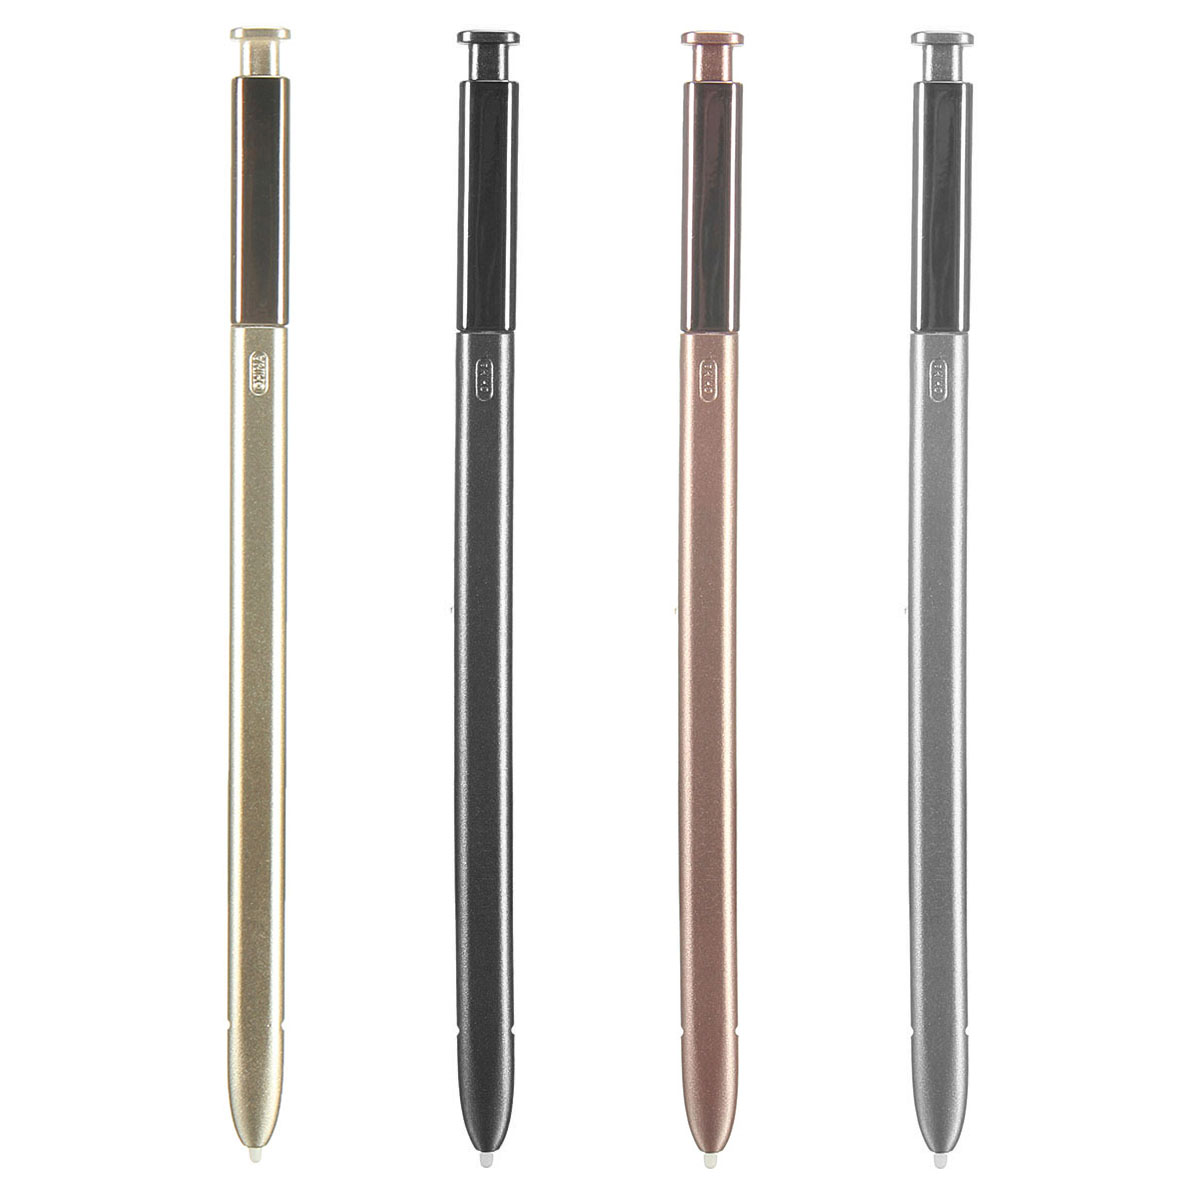 To.uch Screen Stylus S Pen For Note 5 Verizon Sprint T-Mobile